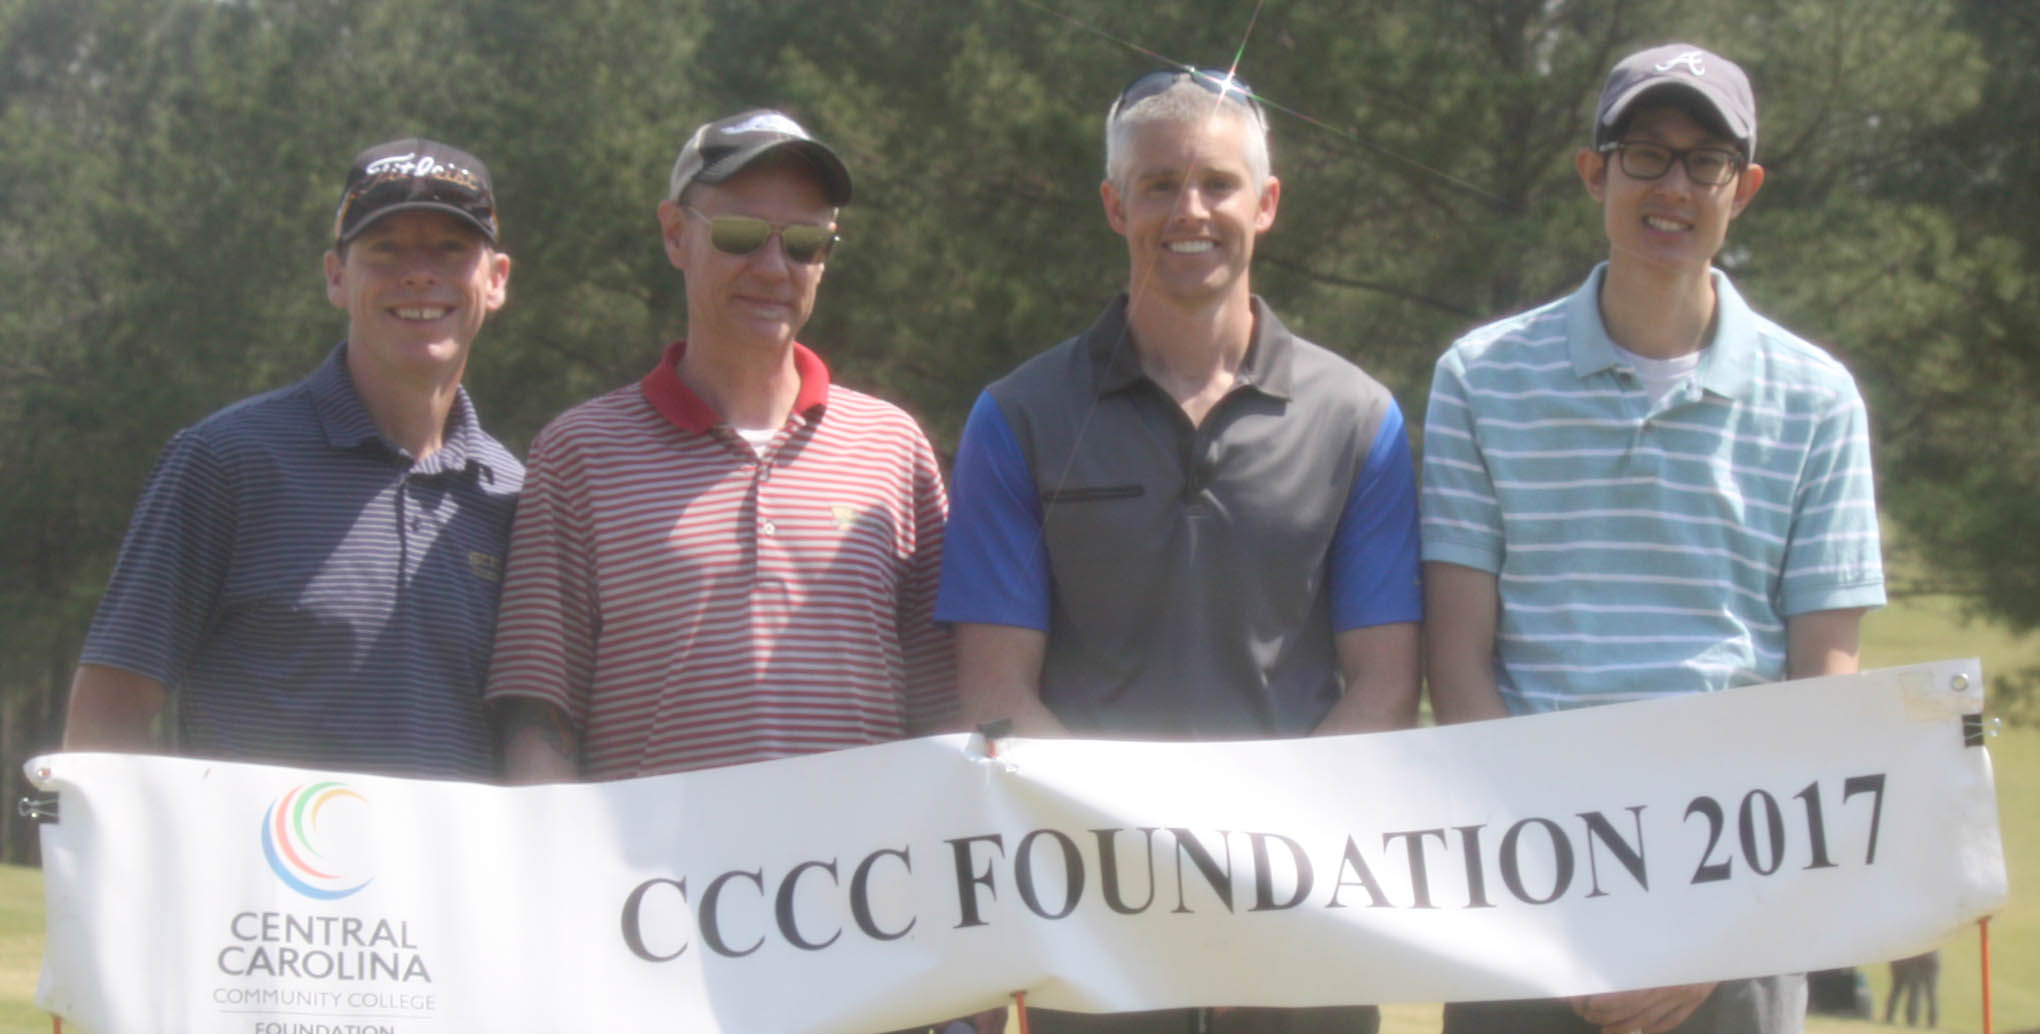 Click to enlarge,  Members of the second flight winning team in the fourth Central Carolina Community College Foundation Chatham Golf Classic were Joe Chapman, David Belser, Judson Elliot, and Andrew Chamkasem. For information about the Foundation, donating to it, establishing a scholarship, or other fund-raising events, contact Emily Hare, Executive Director of the CCCC Foundation, 919-718-7230. Information is also available at the CCCC Foundation website, www.cccc.edu/foundation.